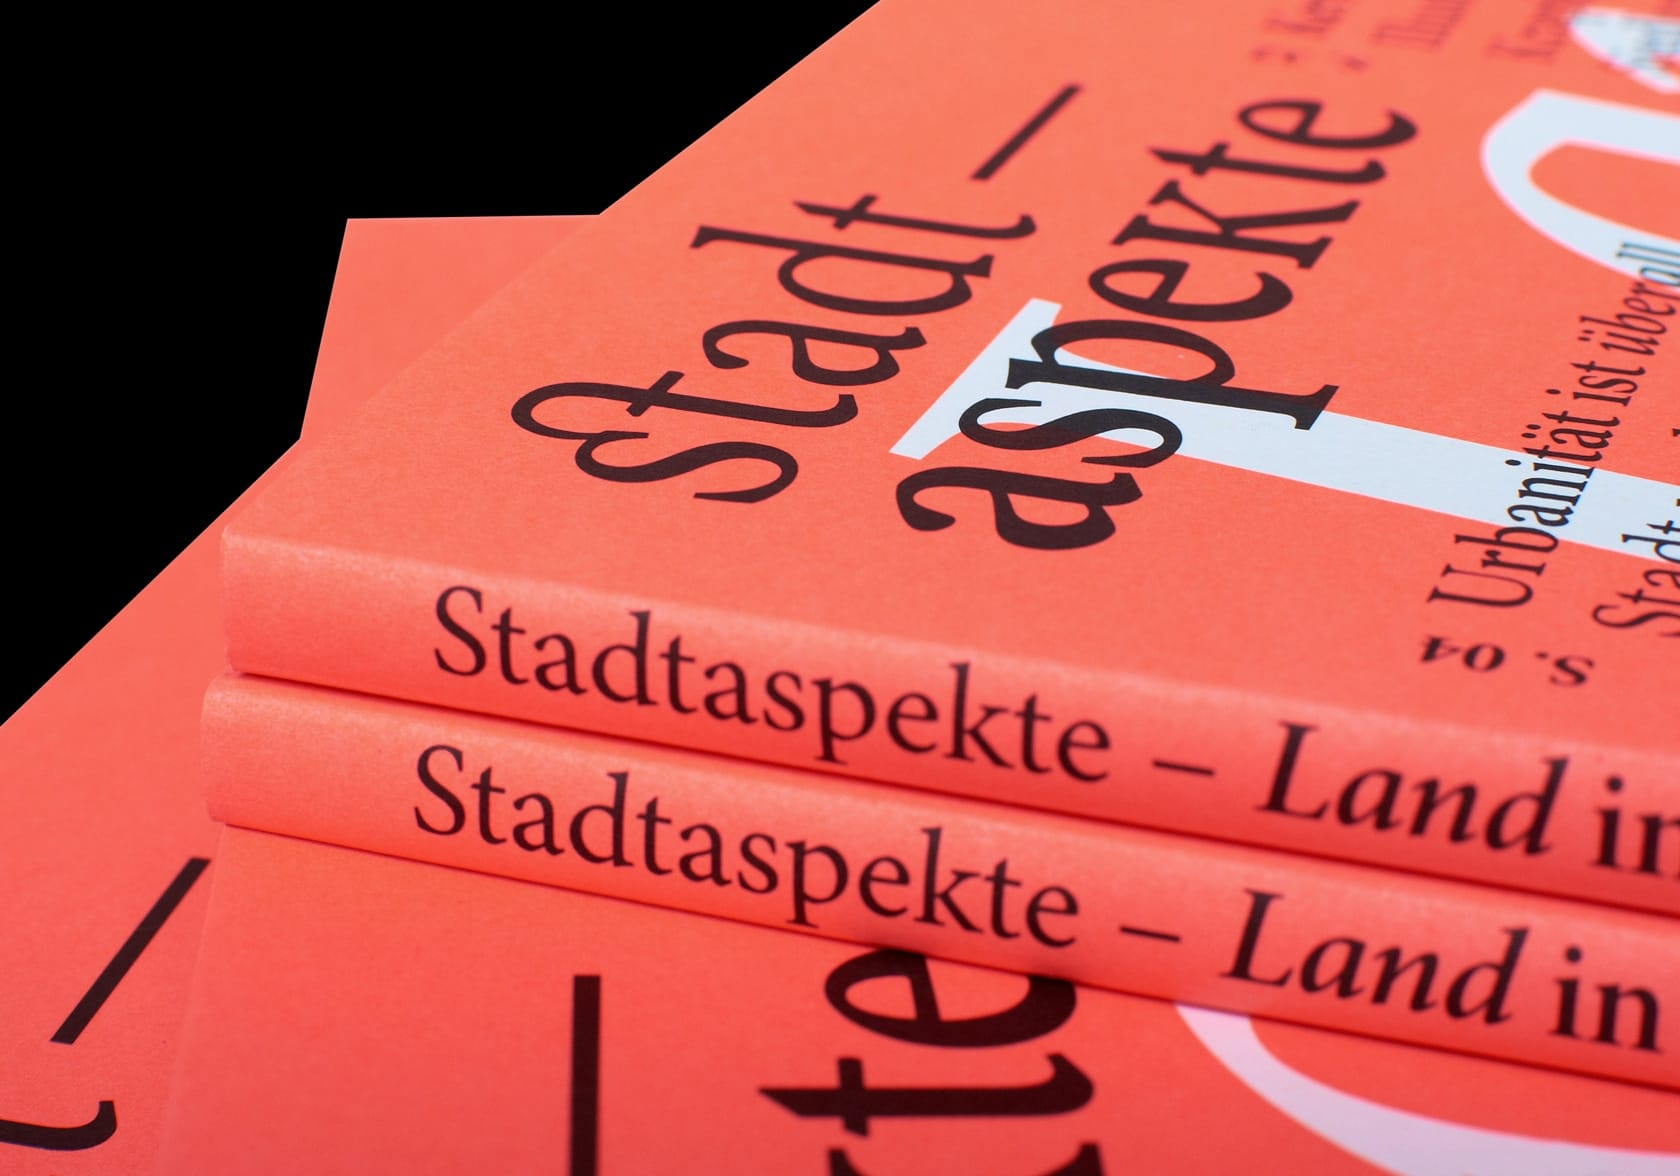 A detail shot of the cover of the 2nd special issue of Stadtaspekte